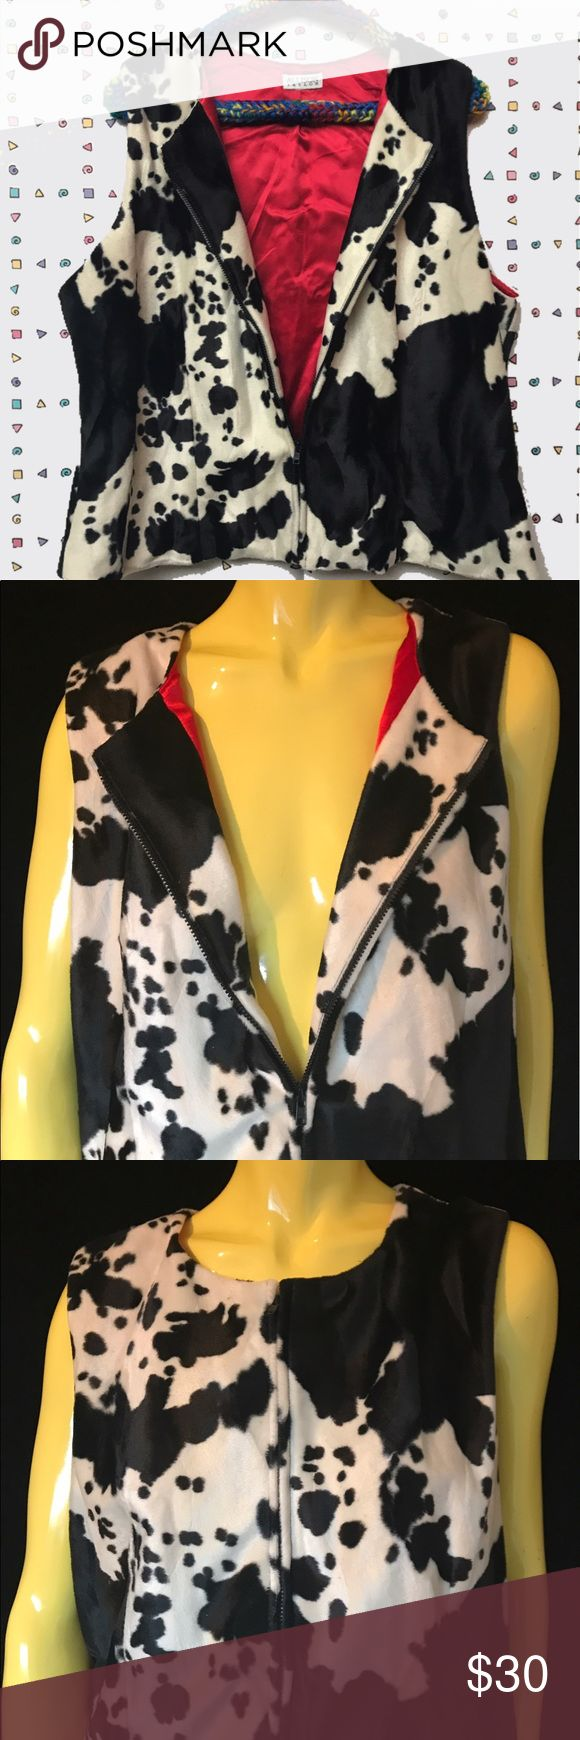 """• 🐄Vtg 90s Faux Cow Print Vest w/ Red Lining ❤️• It's milkin' time ‼️🍼⏰ lined with a buttery red satin lining and a good ol' sturdy zipper for a functional touch ✔️✨. Wear it popped open or zipped all the way to the 🔝. . • Allison Taylor • L - XL • . • Bust: 44"""" • • Length: 22"""" • • Shoulder: 14"""" • • Waist: 41"""" • . . • * • . • ✶ • . • * • .  #vintage #vtg #retro #1990s #1990 #90 #90s #y2k #cow #print #hide #faux #fuzzy #fur #fleece #black #and #white #fashion #wild #western #day drag…"""